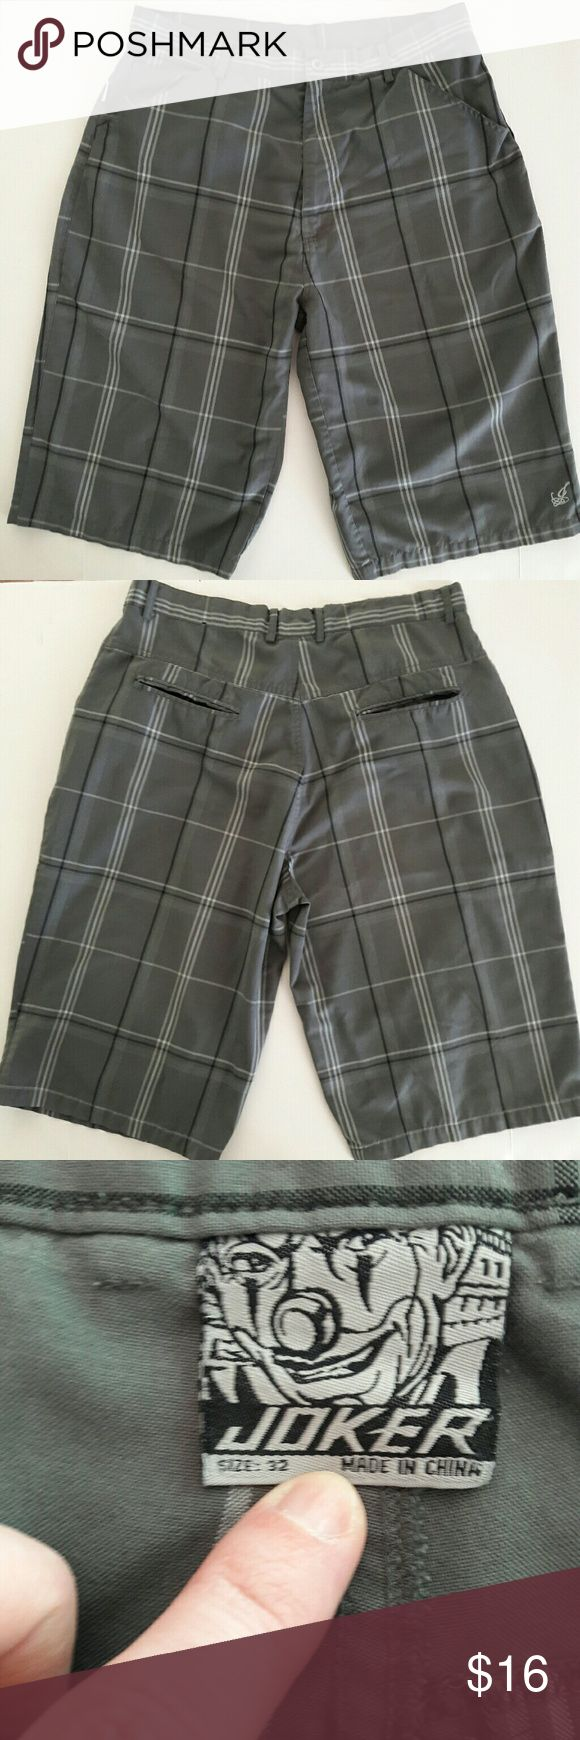 {Mens} Gray plaid shorts by Joker Great shorts for summer! Colors are gray, white and black. Has the joker symbol on one of the legs. No flaws. Measurements provided in pics above. From a smoke and pet free home. Fast shipping! Joker Shorts